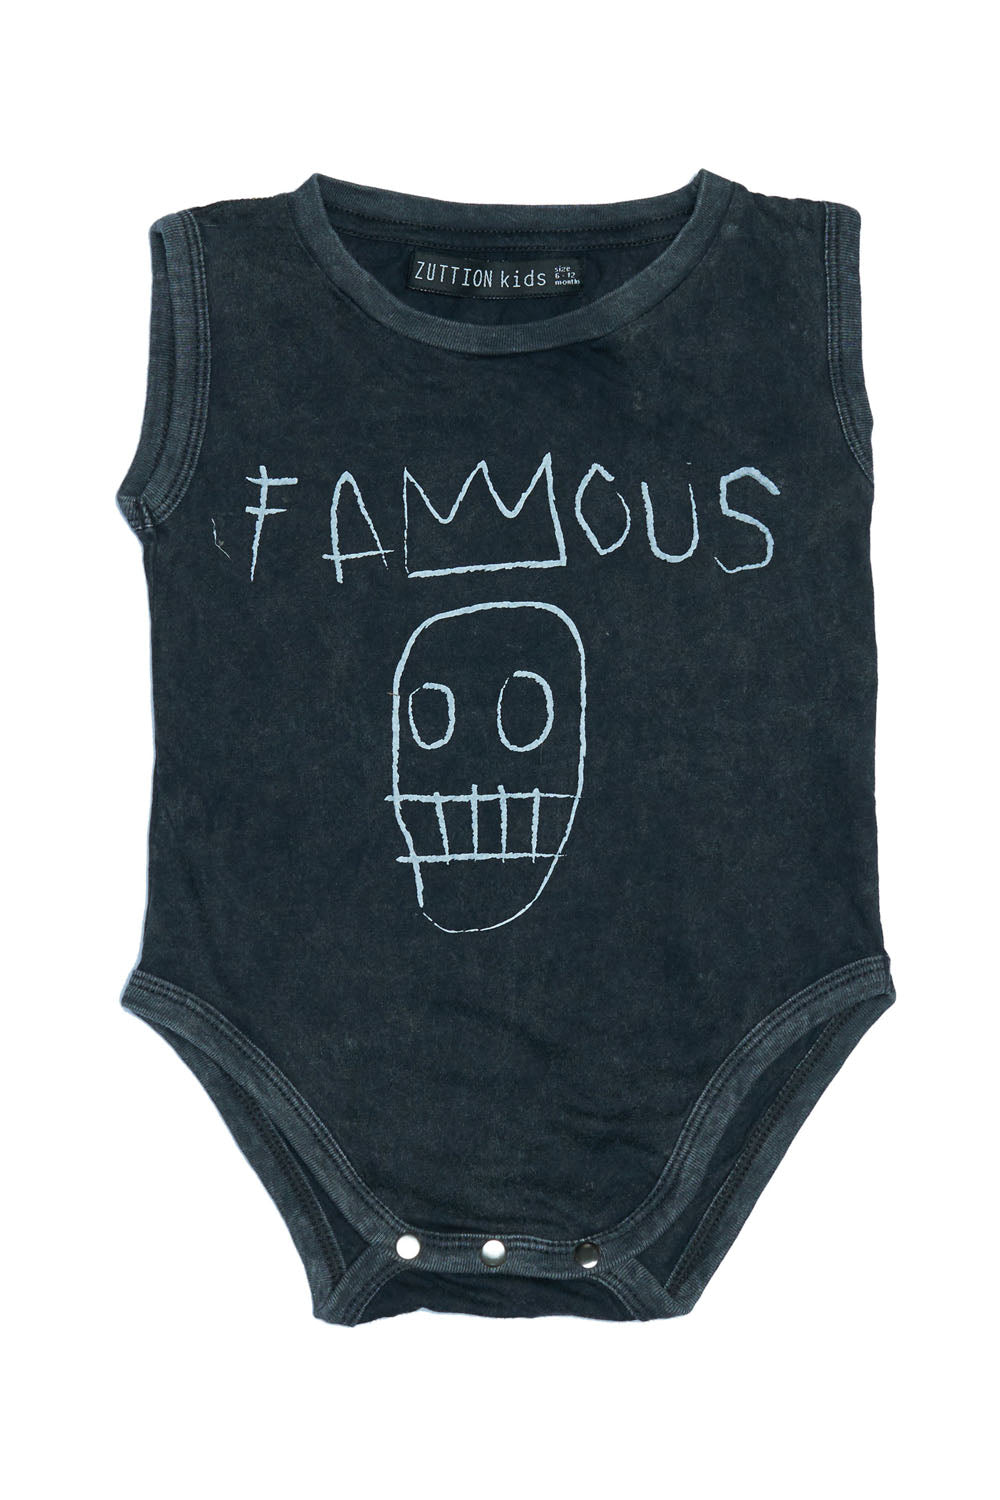 FAMOUS ONESIE CHARCOAL